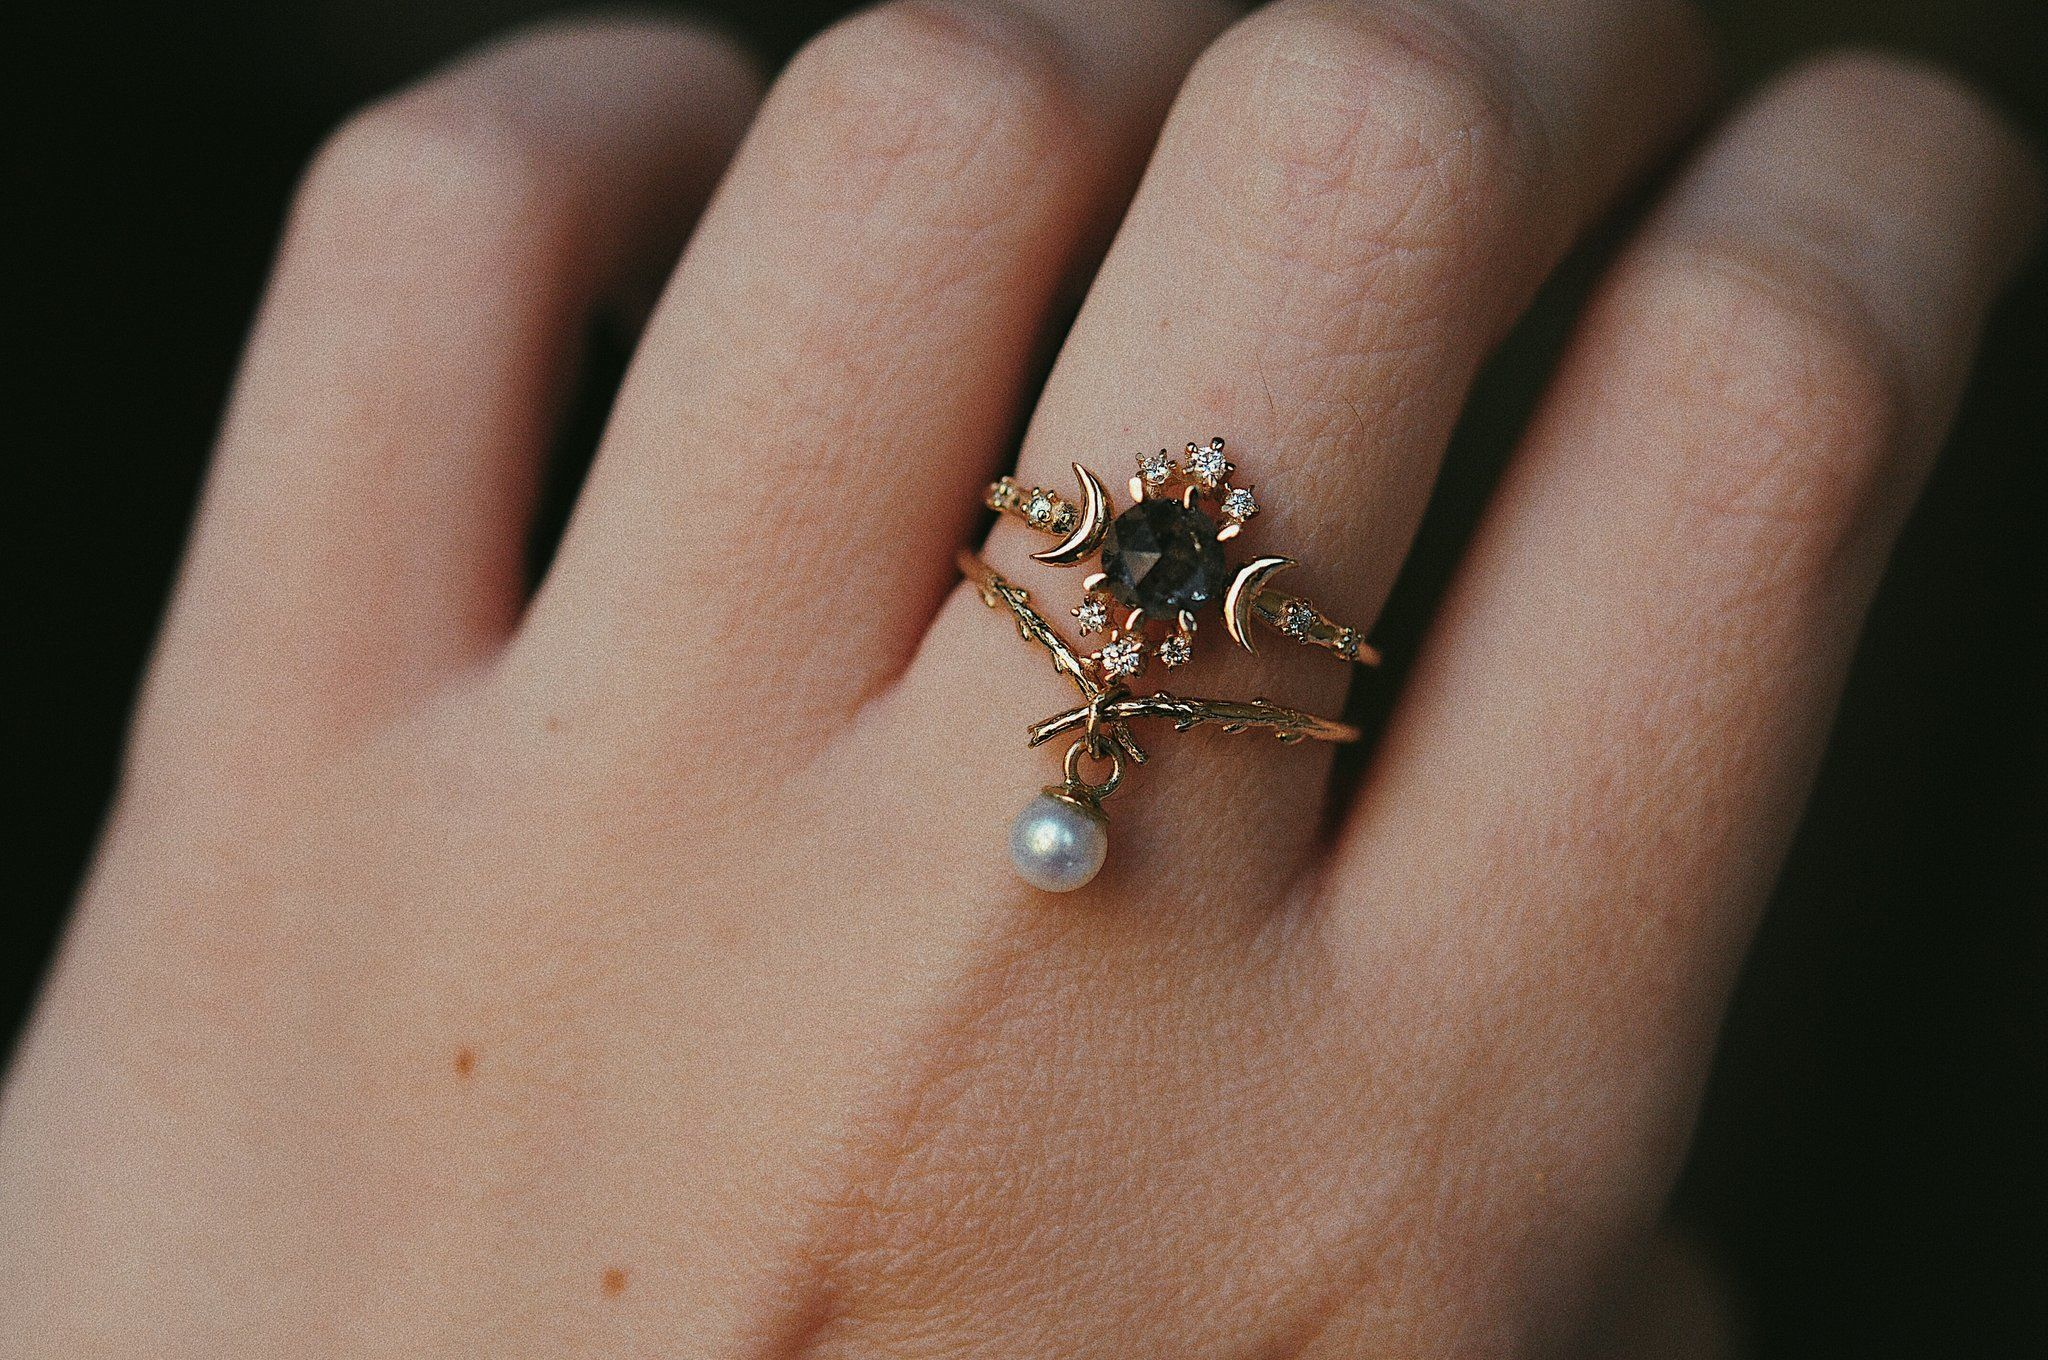 crescent moon Moon and stars ring 14k rose gold salt and pepper diamond